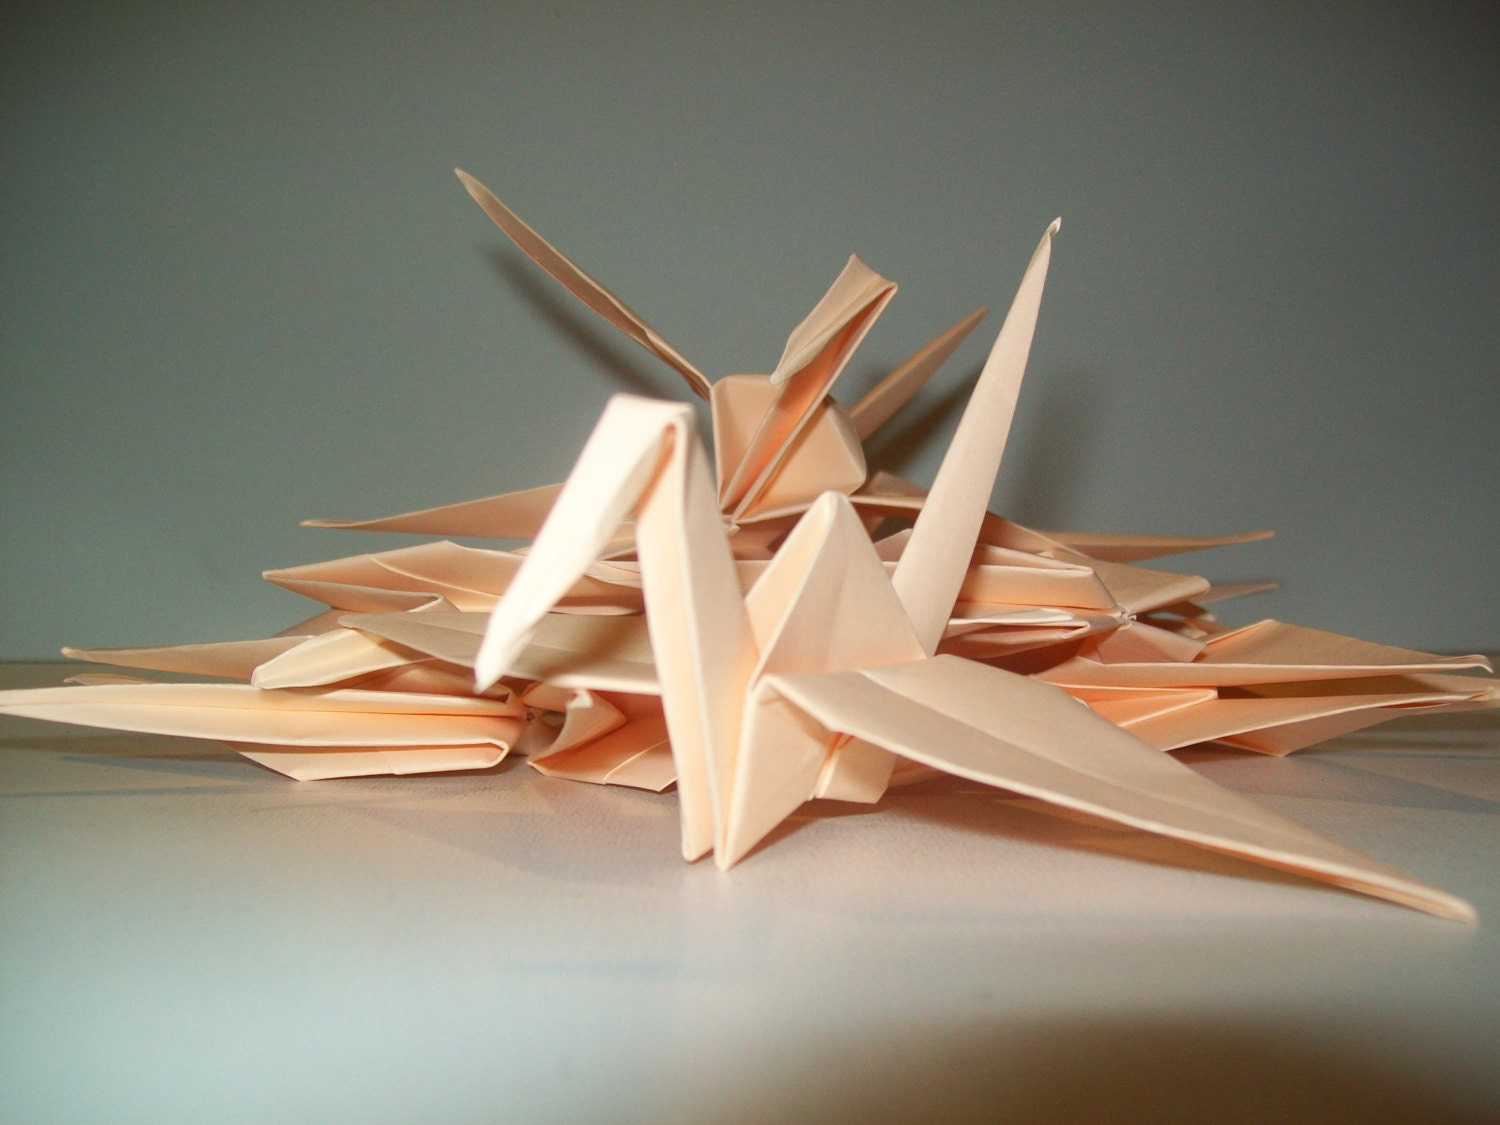 Wedding Origami Crane Decor Set Of 100 Peach Origami Crane